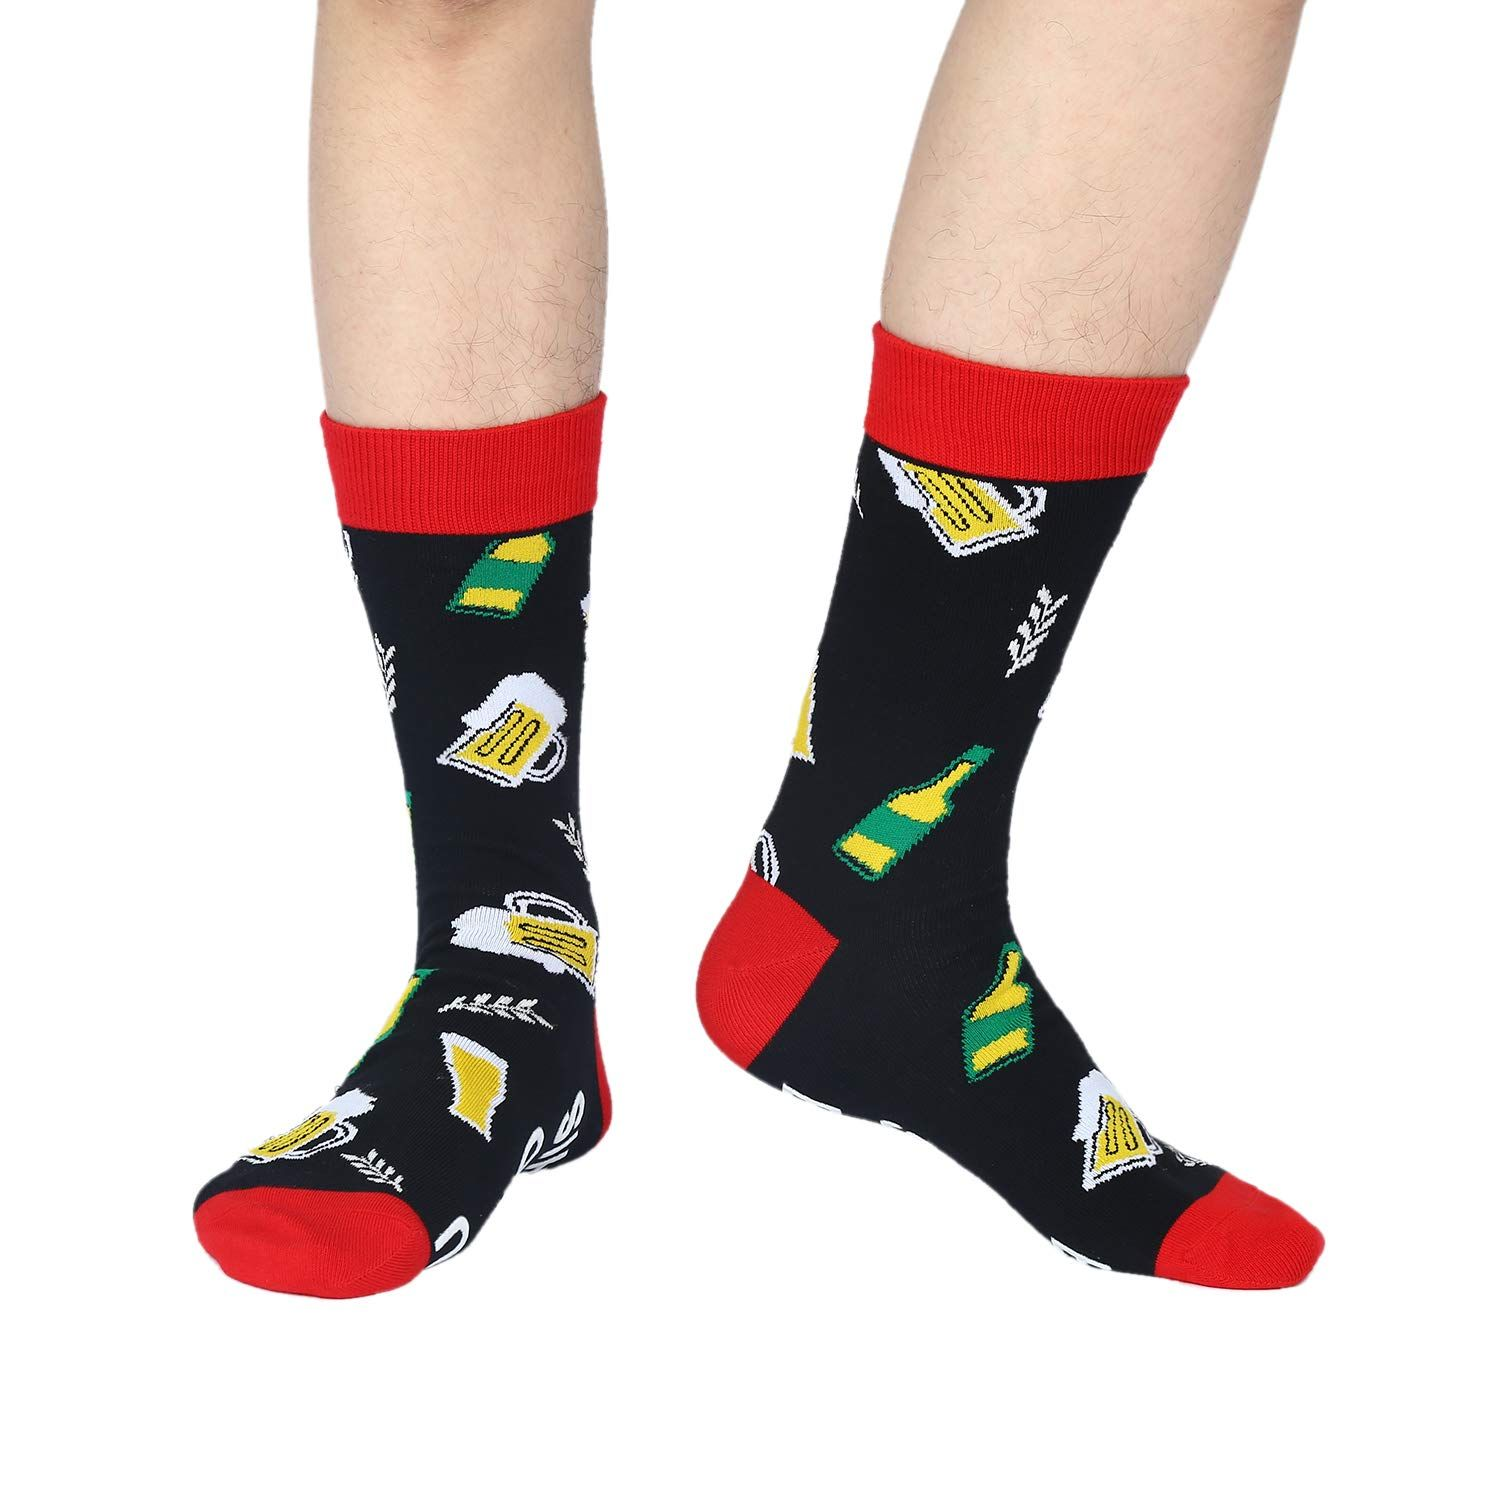 Sallcks Mens If You Can Read This Funny Saying Beer Wine Tea Tacos Cotton Crew Socks Find Out More About The Great P Crew Socks Holiday Outfits Pizza Socks